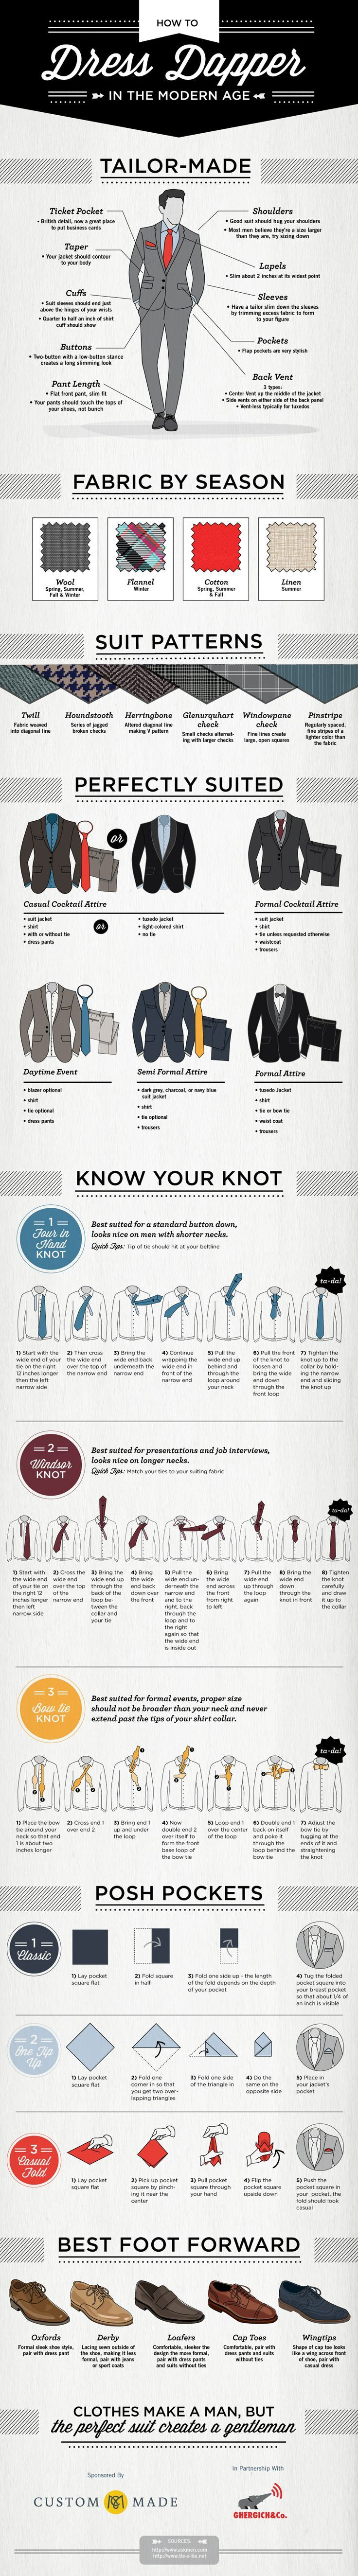 How to Look Dapper in the Modern Age. W